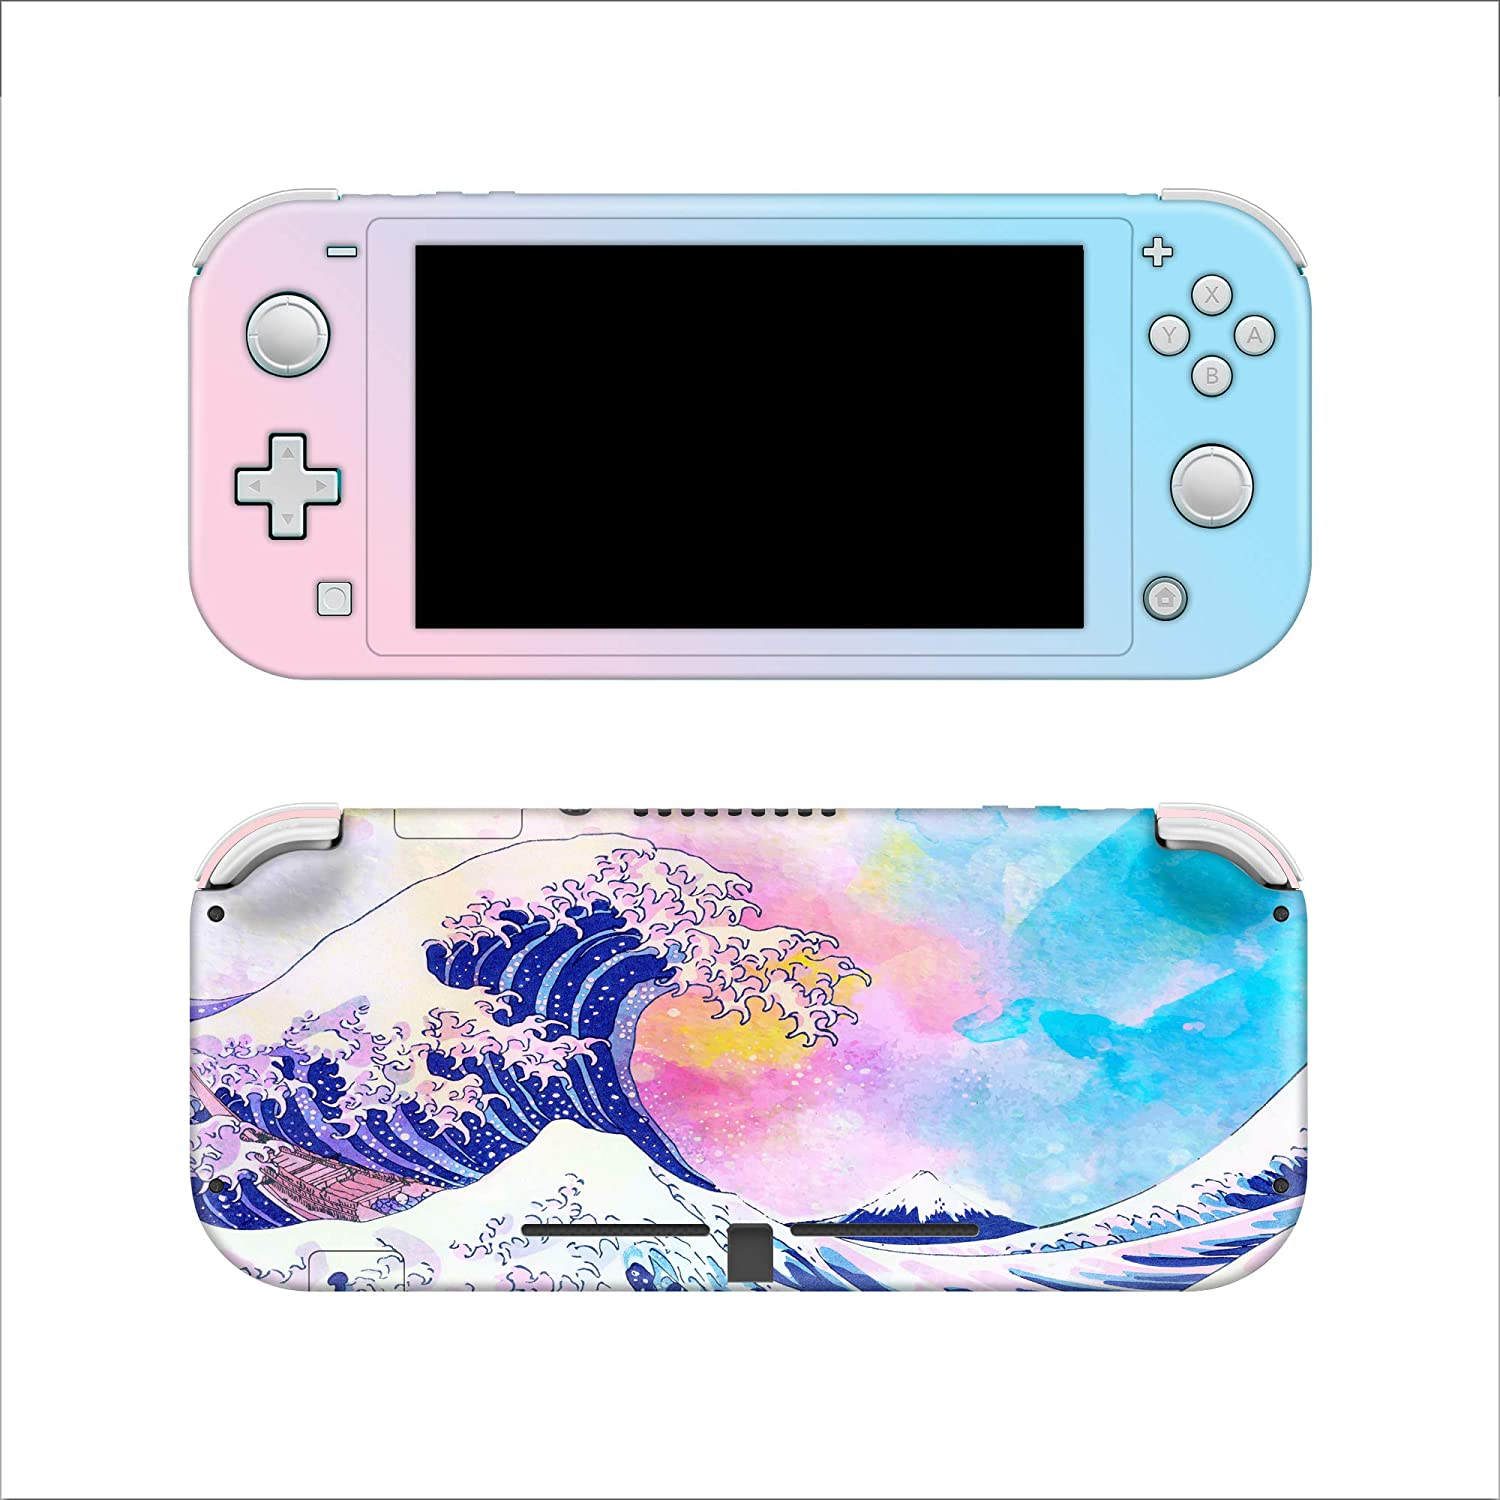 Watercolor The Great Wave Off Kanagawa Full Wrap for Switch Lite 3M Premium Vinyl 3M overlaminate